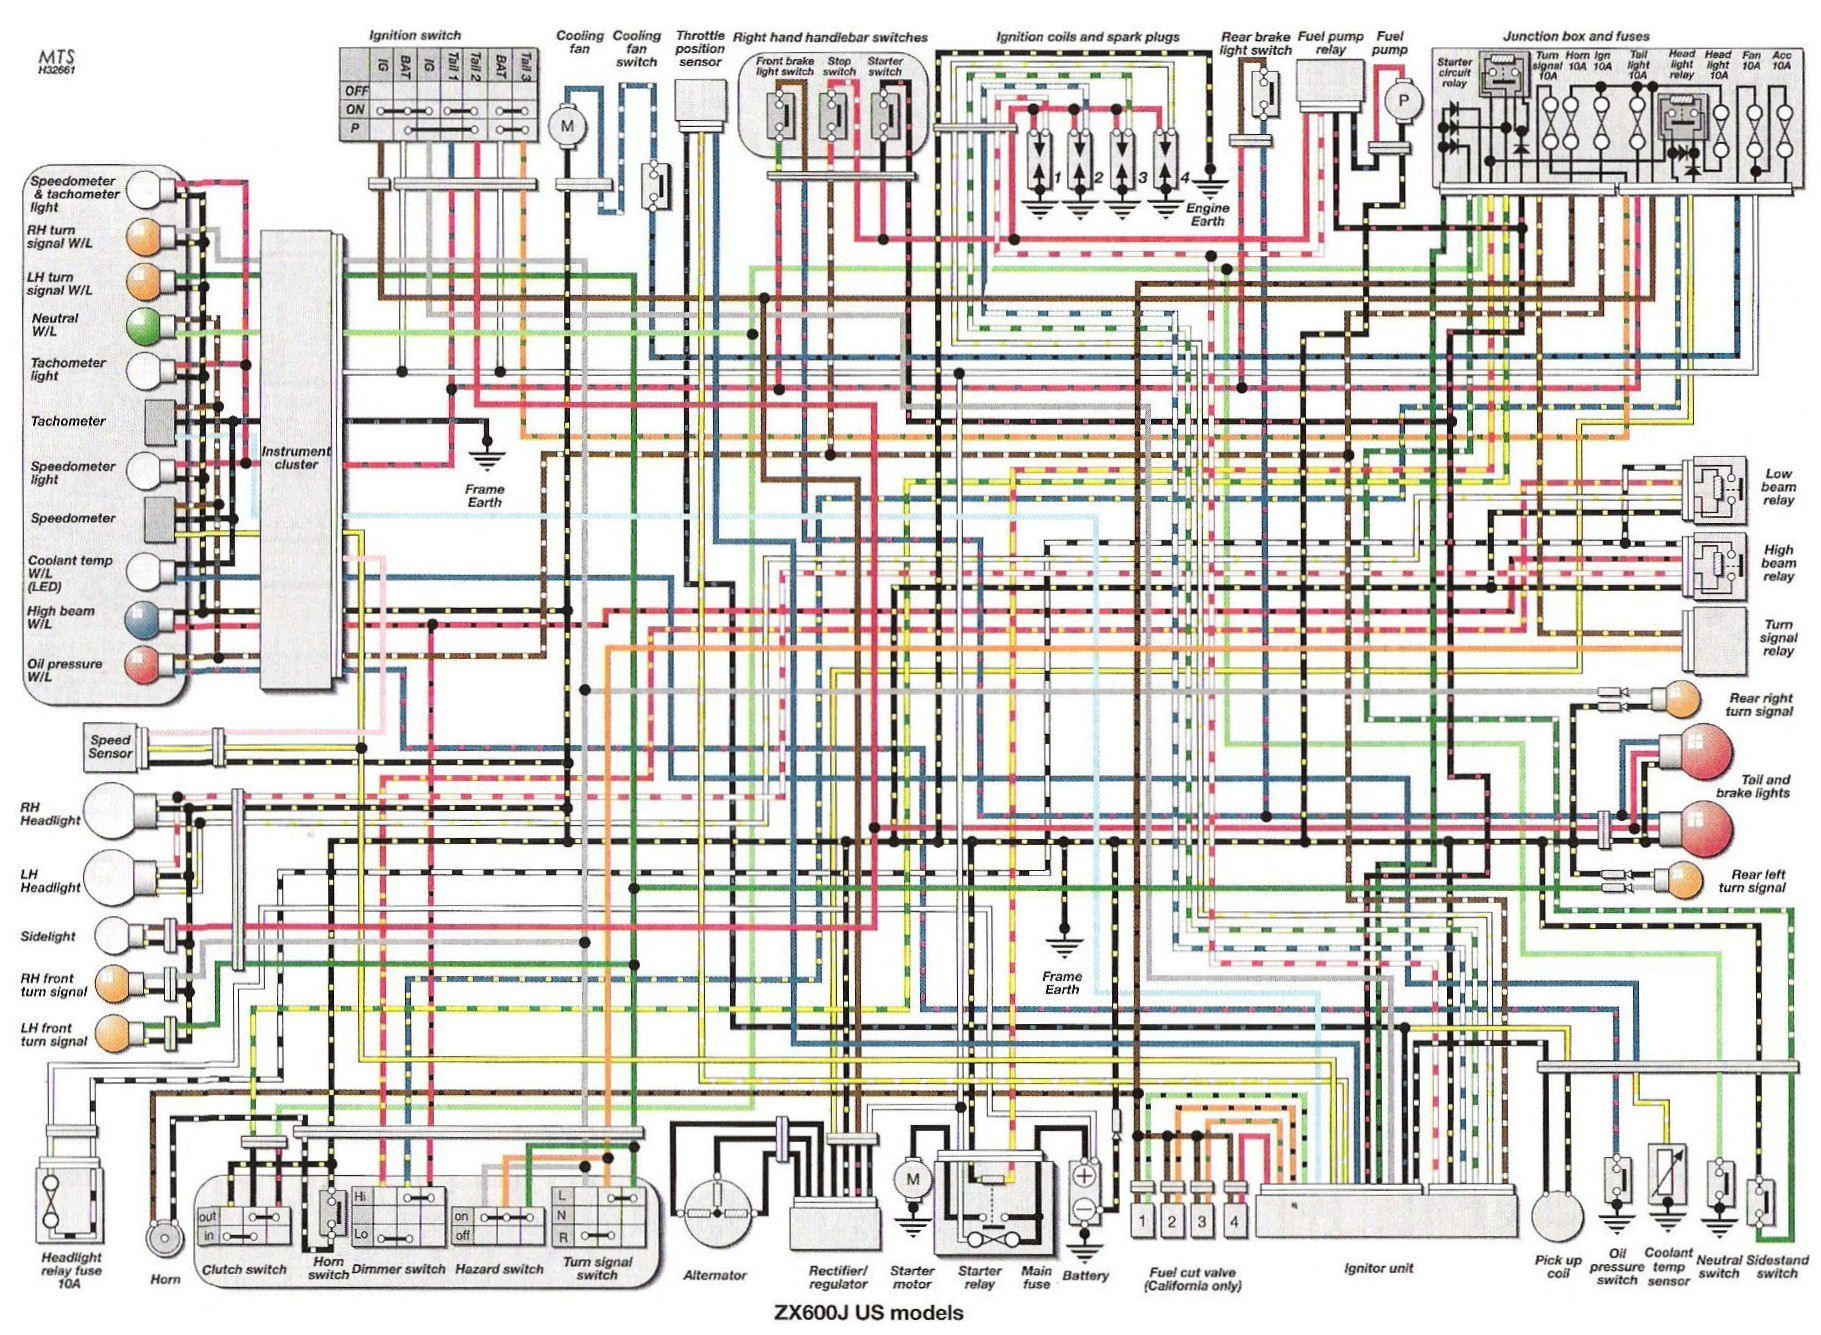 14 Great Ideas Of House Wiring Circuit Diagram Https Bacamajalah Com 14 Great Ideas Of House Wiring Circuit Circuit Diagram House Wiring Electrical Diagram